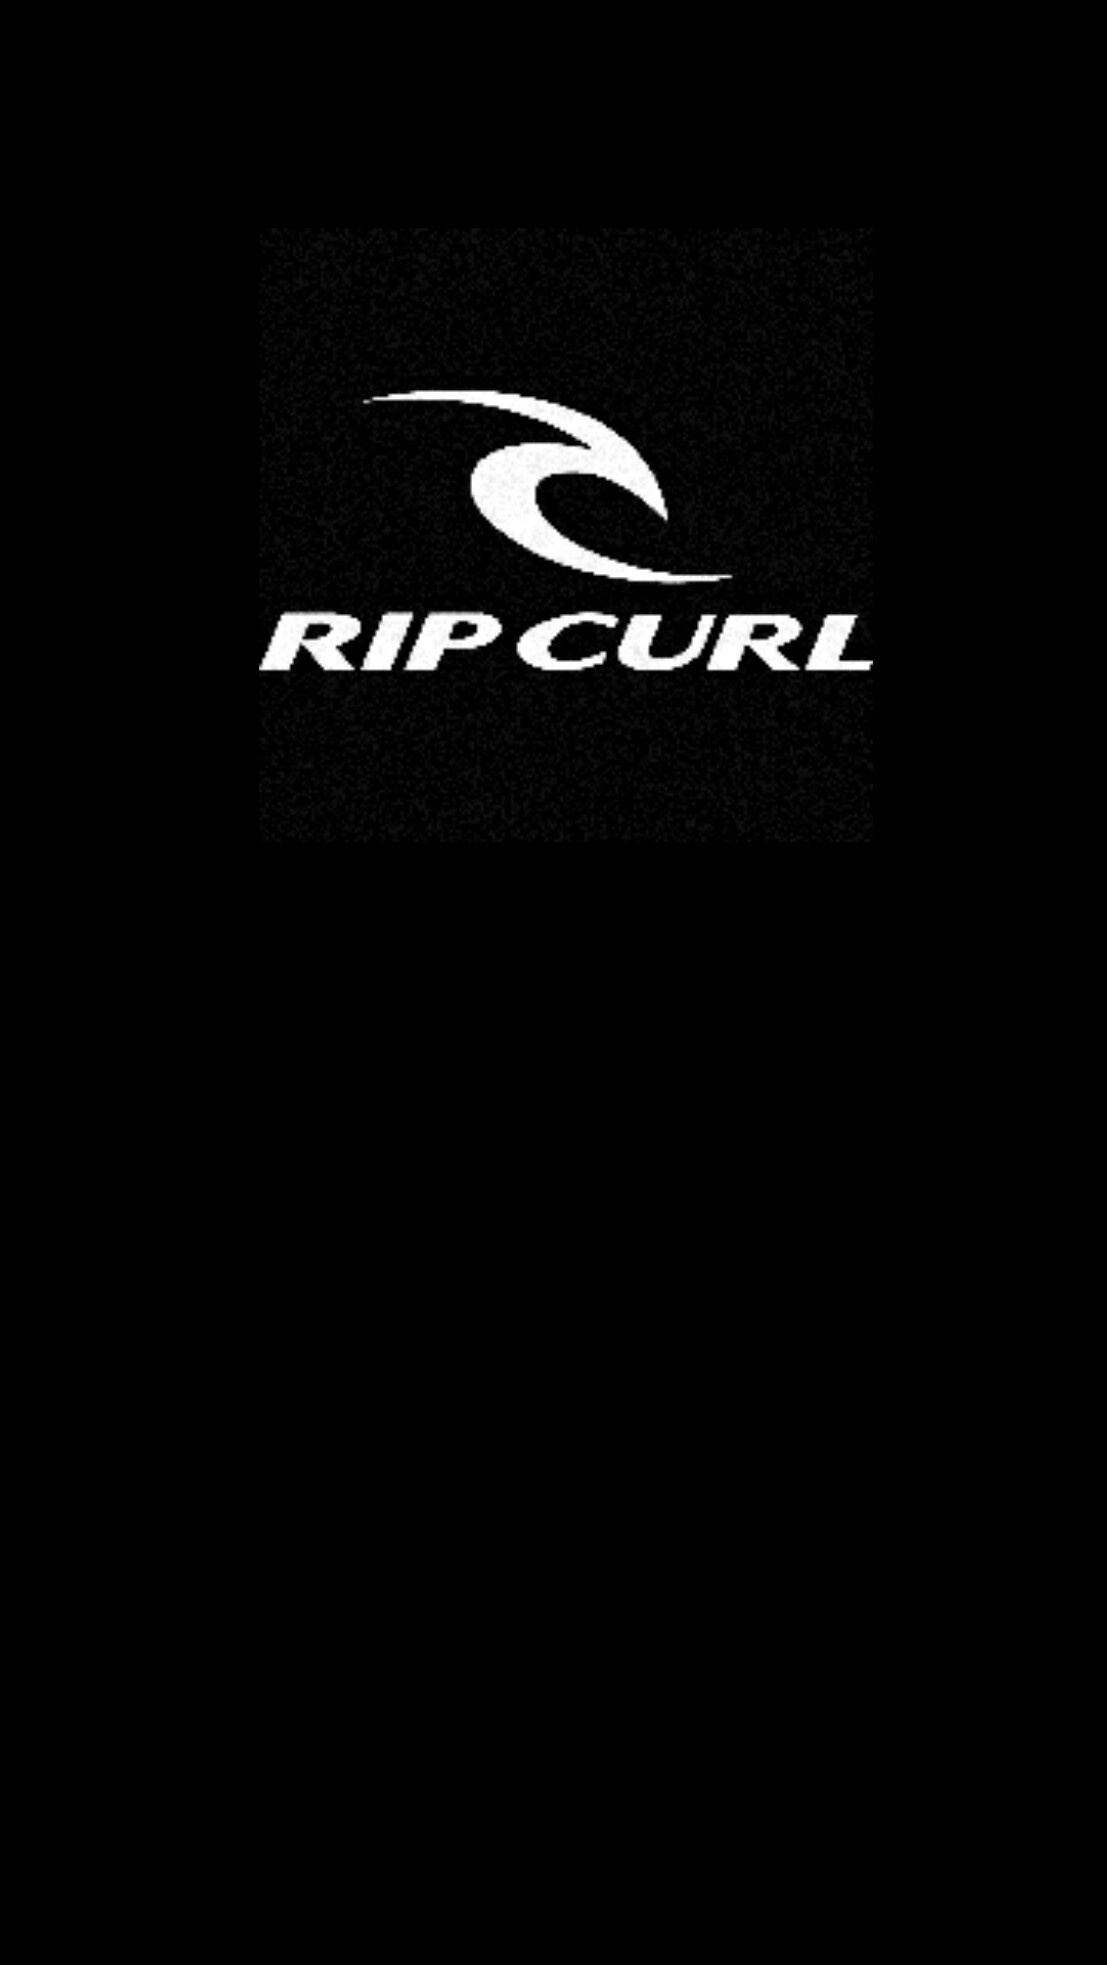 1107x1965 #ripcurl #black #wallpaper #iPhone #android